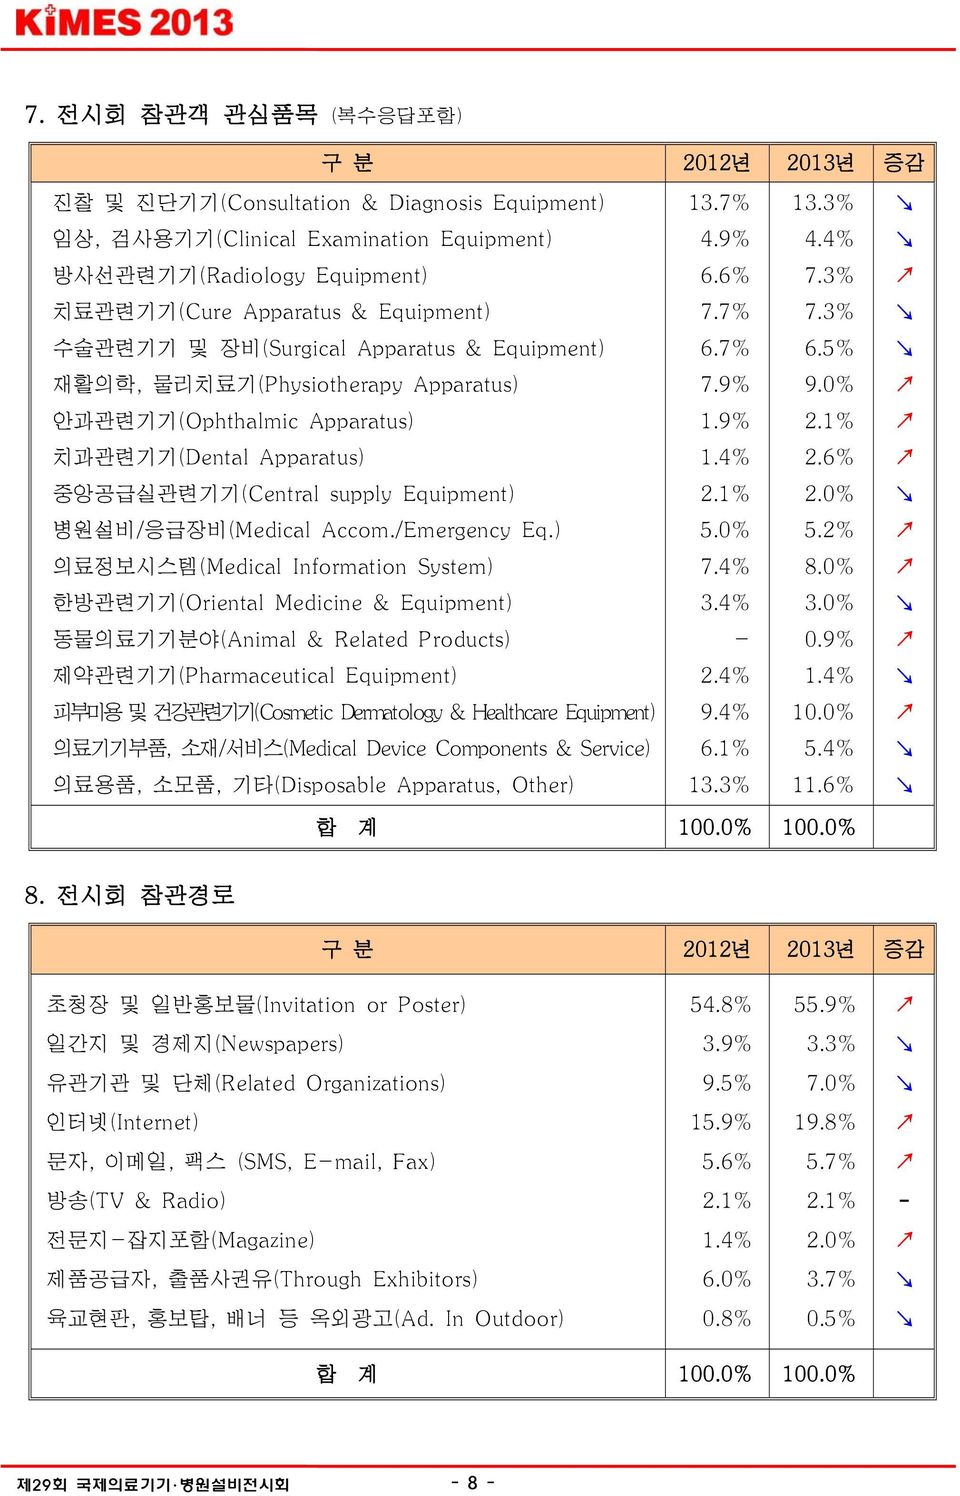 1% 치과관련기기(Dental Apparatus) 1.4% 2.6% 중앙공급실관련기기(Central supply Equipment) 2.1% 2.0% 병원설비/응급장비(Medical Accom./Emergency Eq.) 5.0% 5.2% 의료정보시스템(Medical Information System) 7.4% 8.